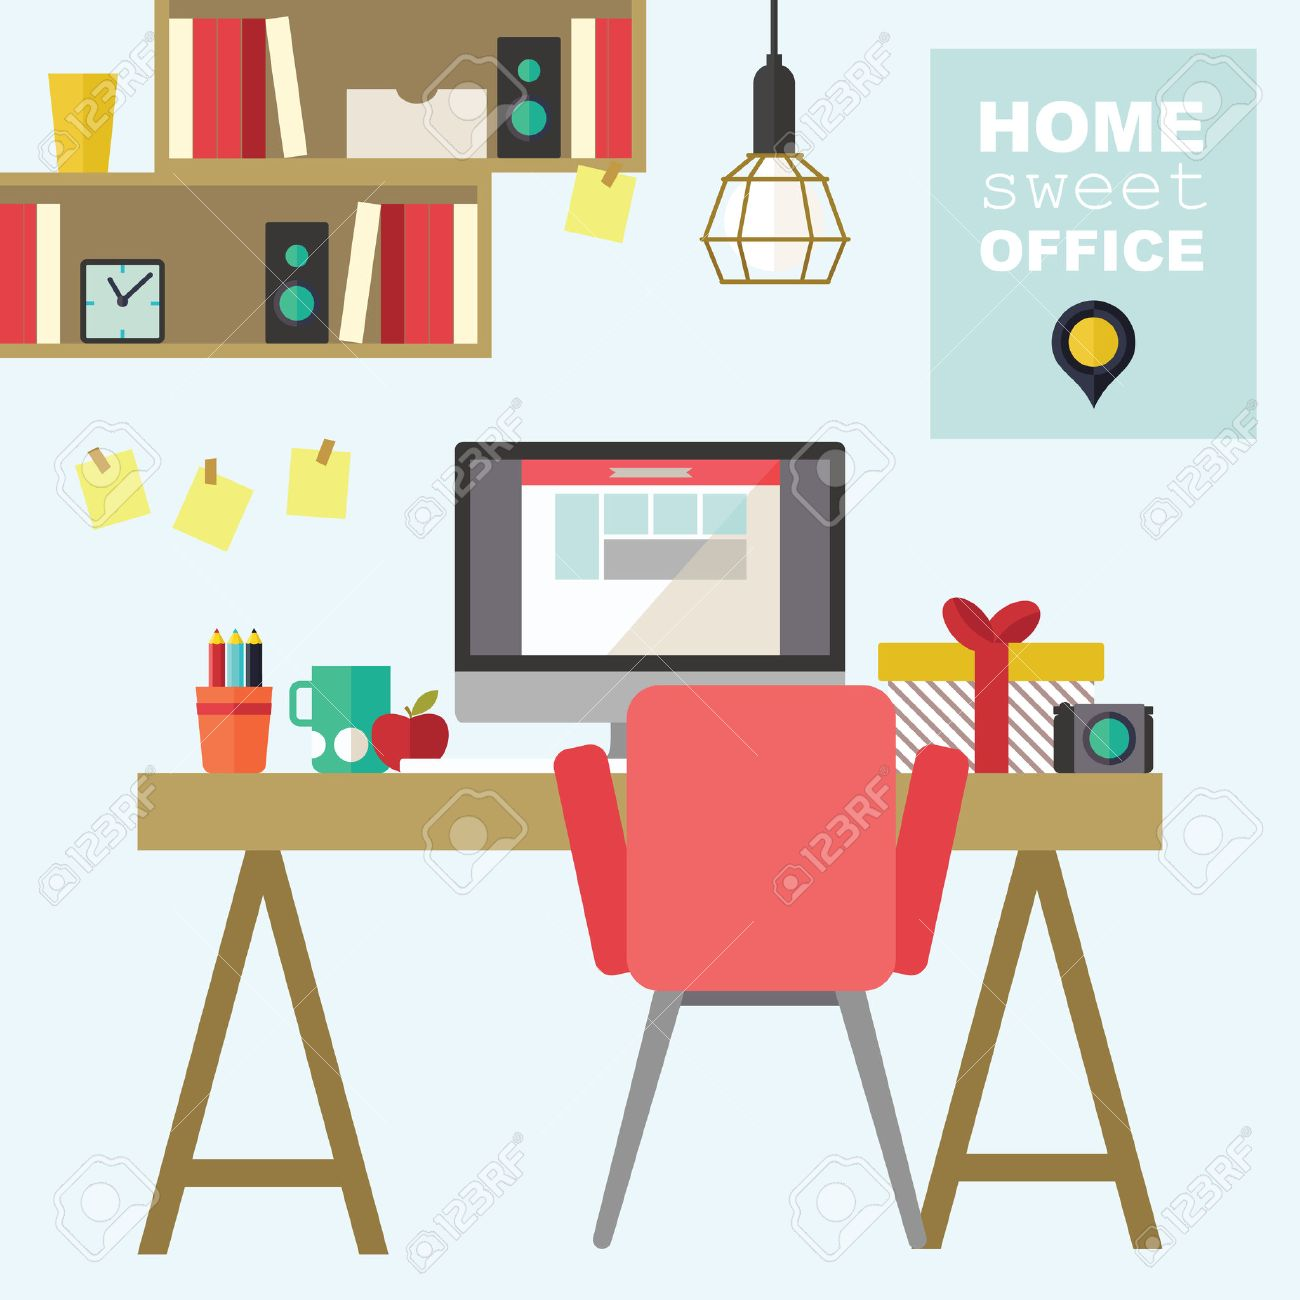 Home Office Flat Interior Design Illustration Royalty Free Cliparts